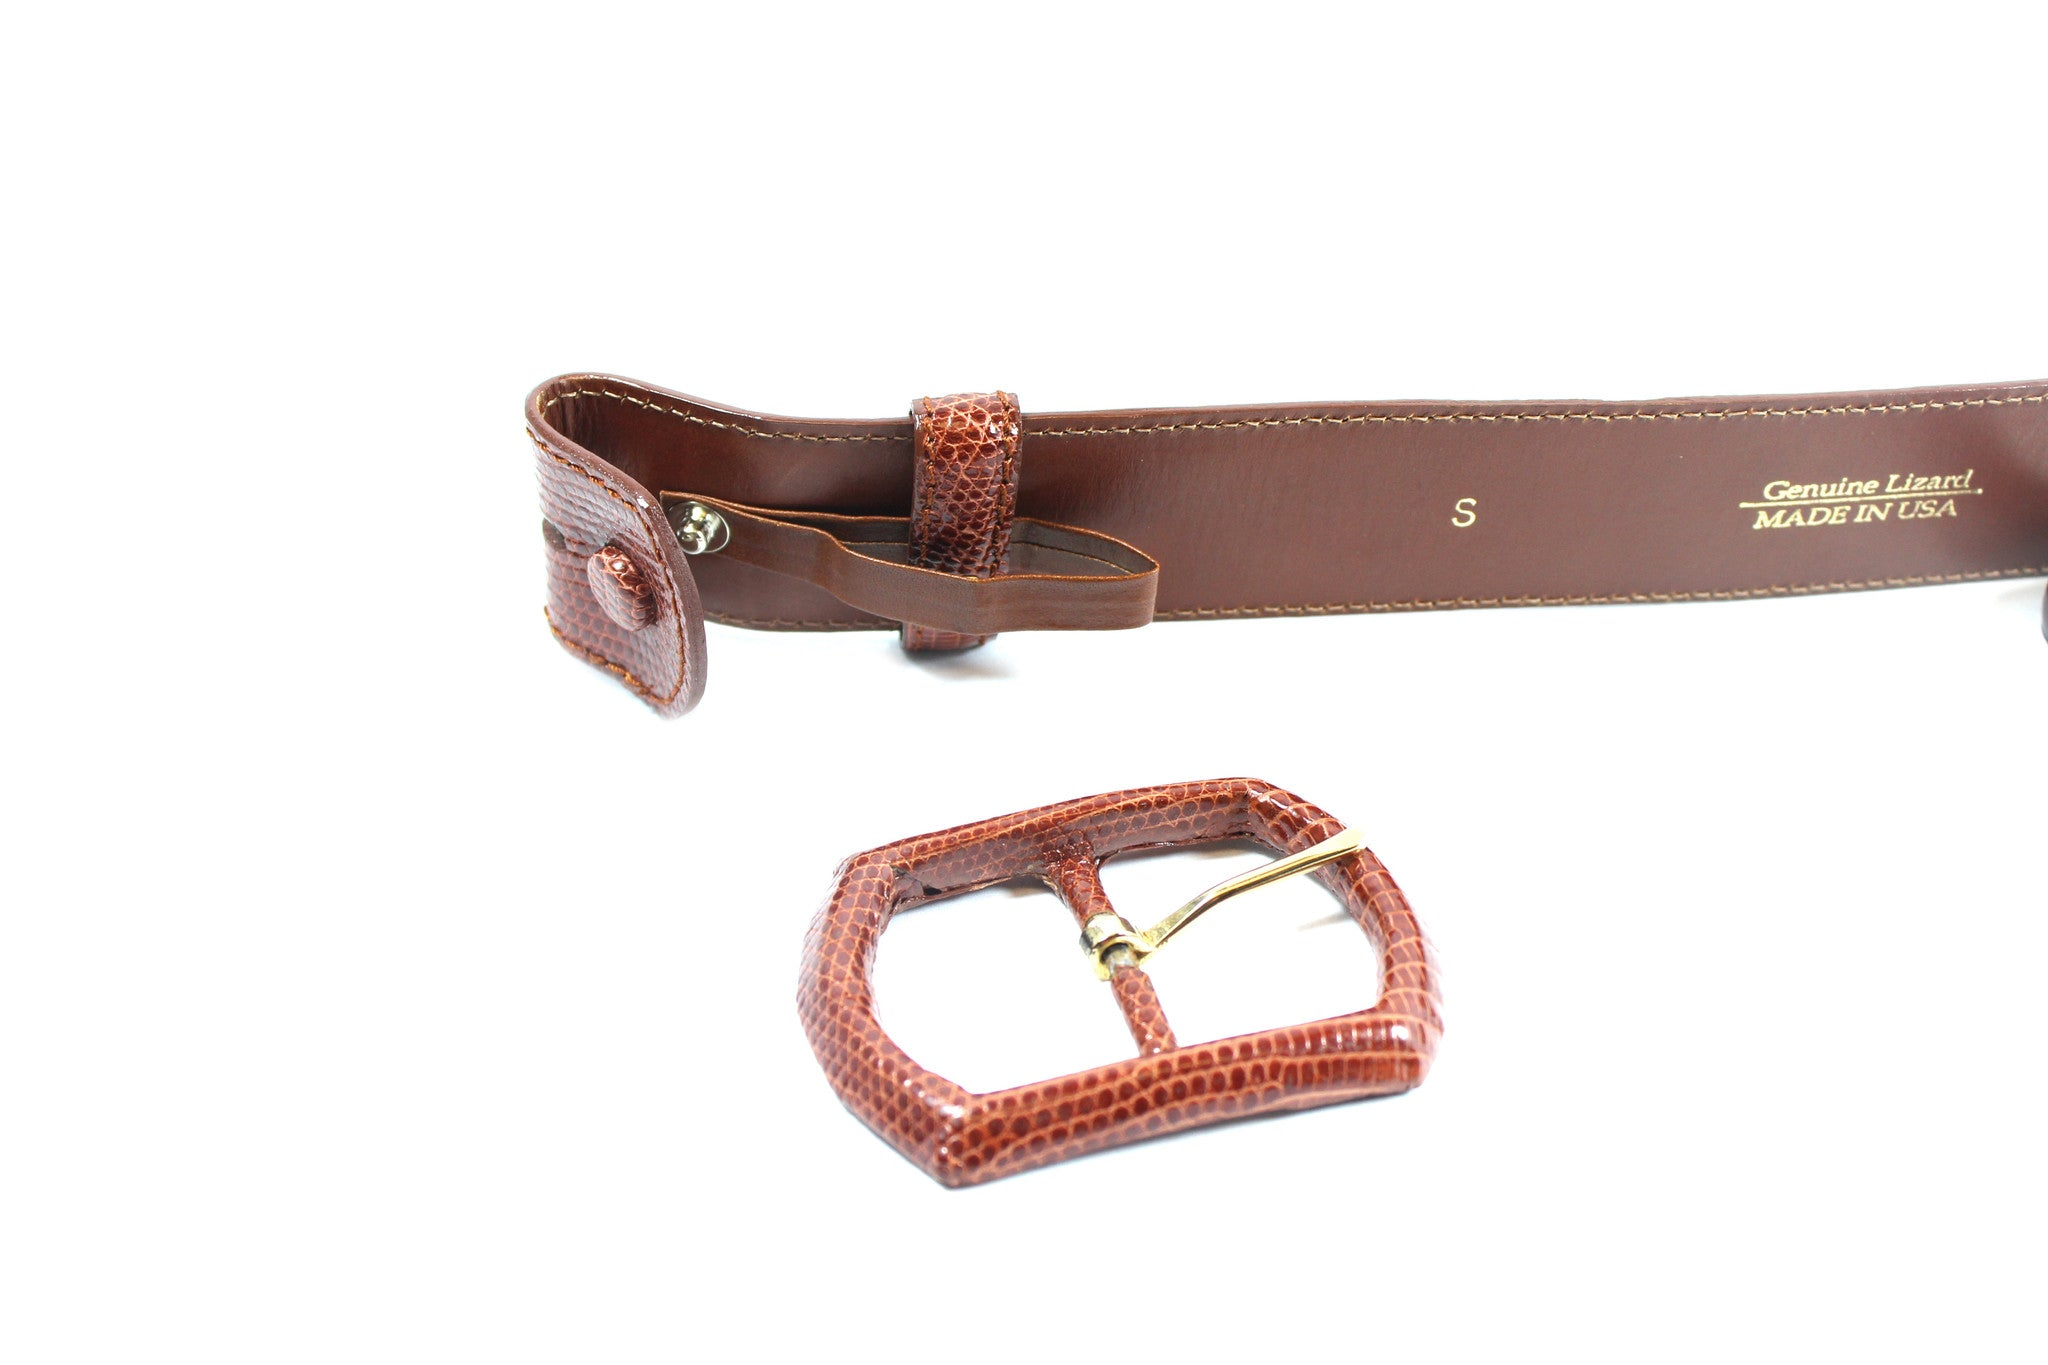 Oscar de la Renta Brown Lizard Leather Belt (Size S) - Encore Consignment - 7